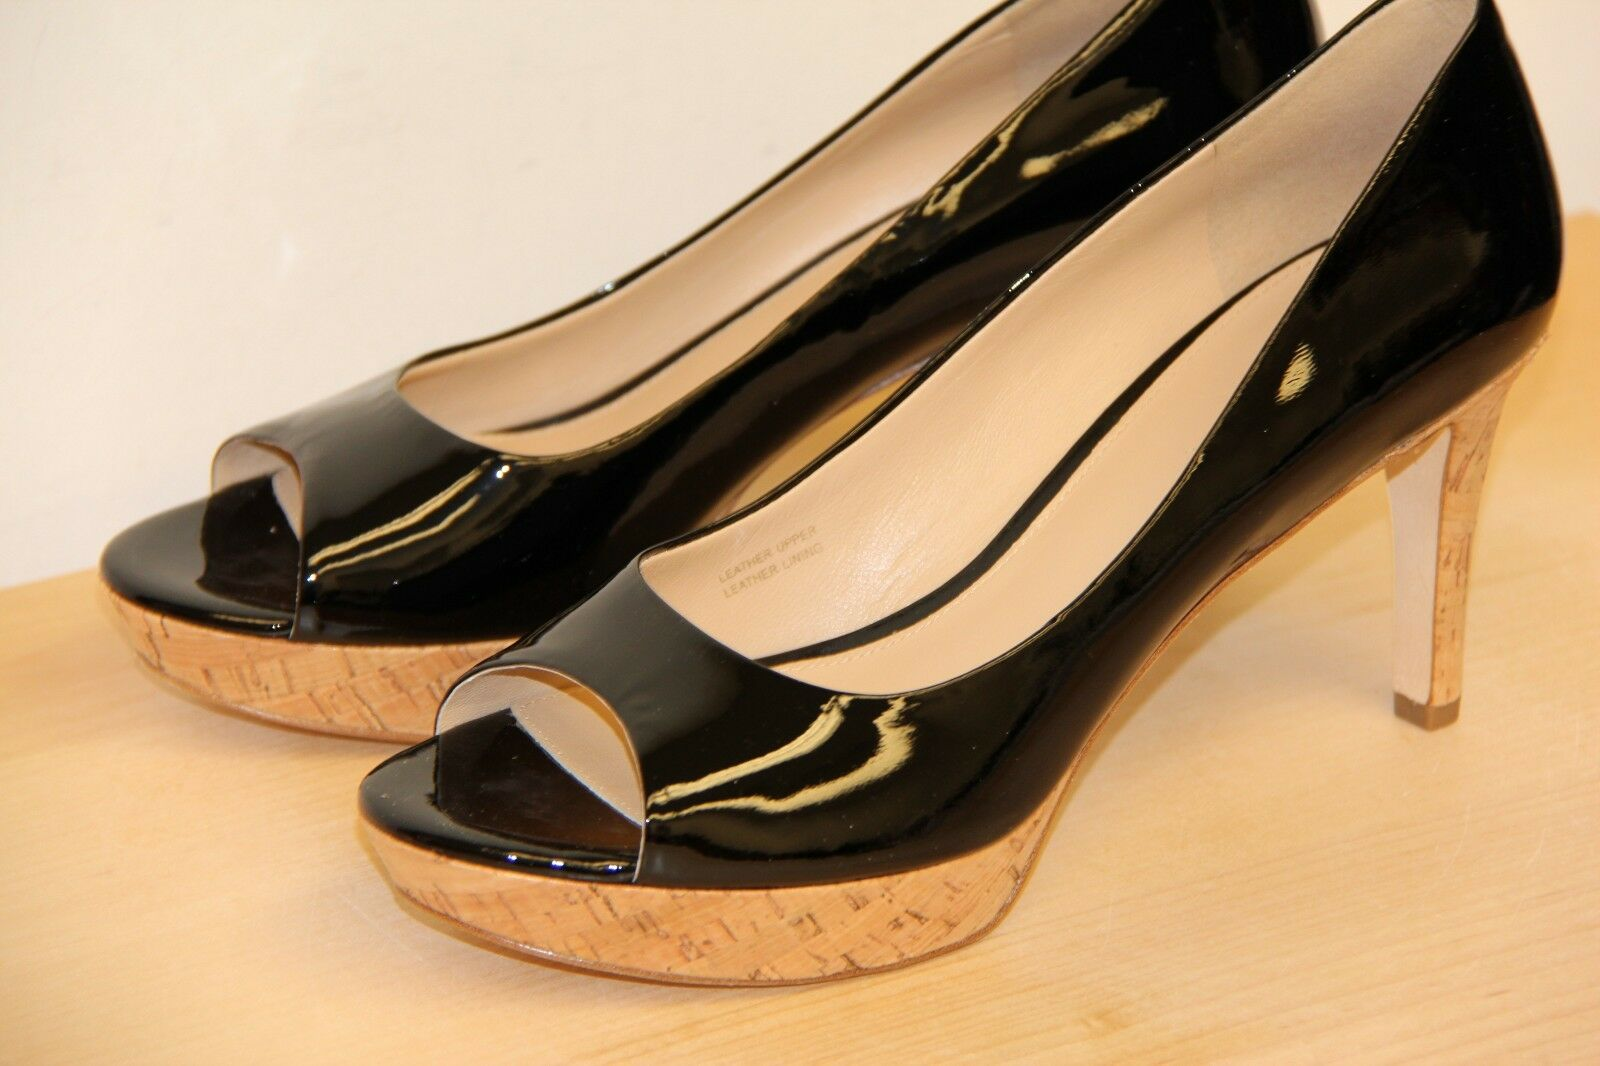 NIB Via Spiga ALEXIS Real Cork Leather Black Heels Pumps Peep Toe Sz 9 M $225